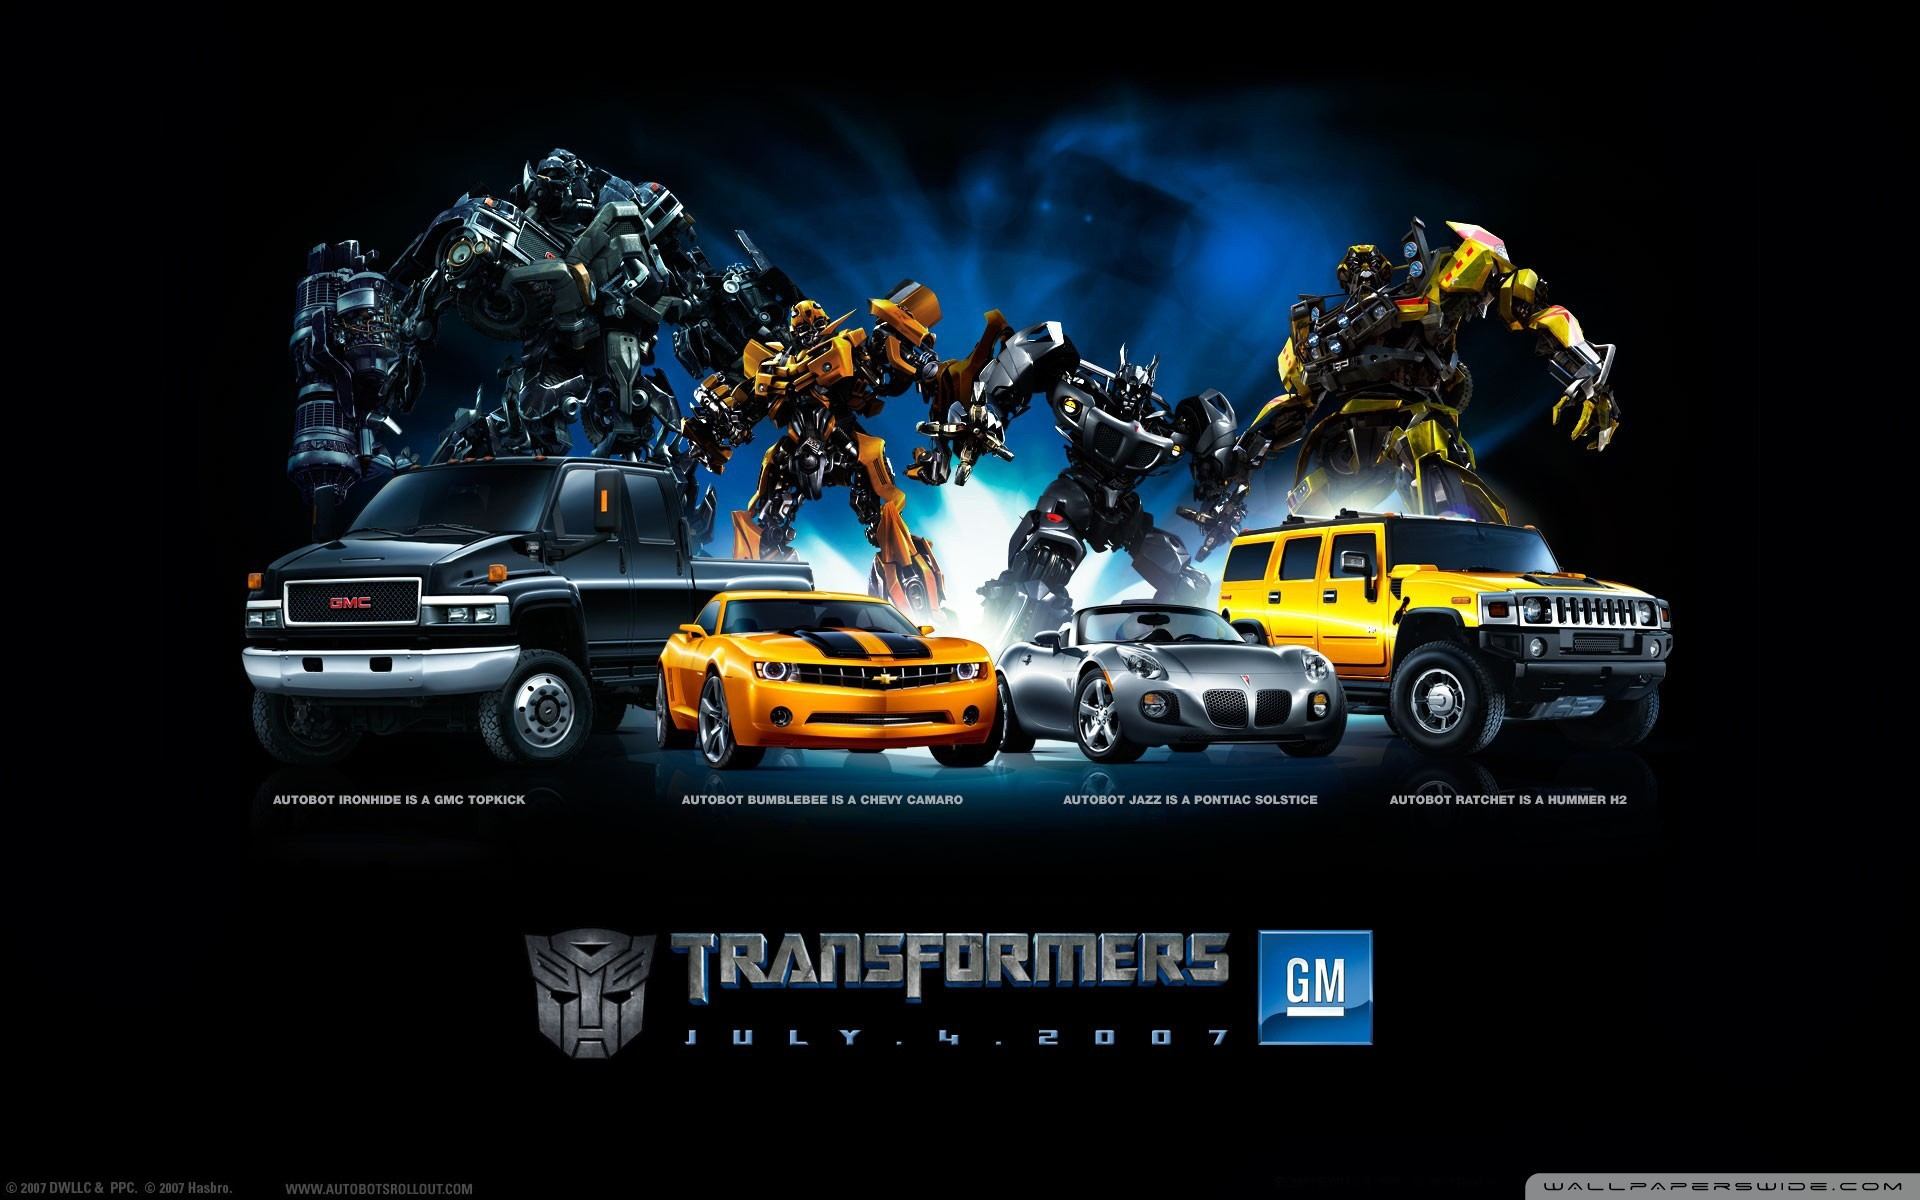 transformers pics and wallpapers (70+ images)